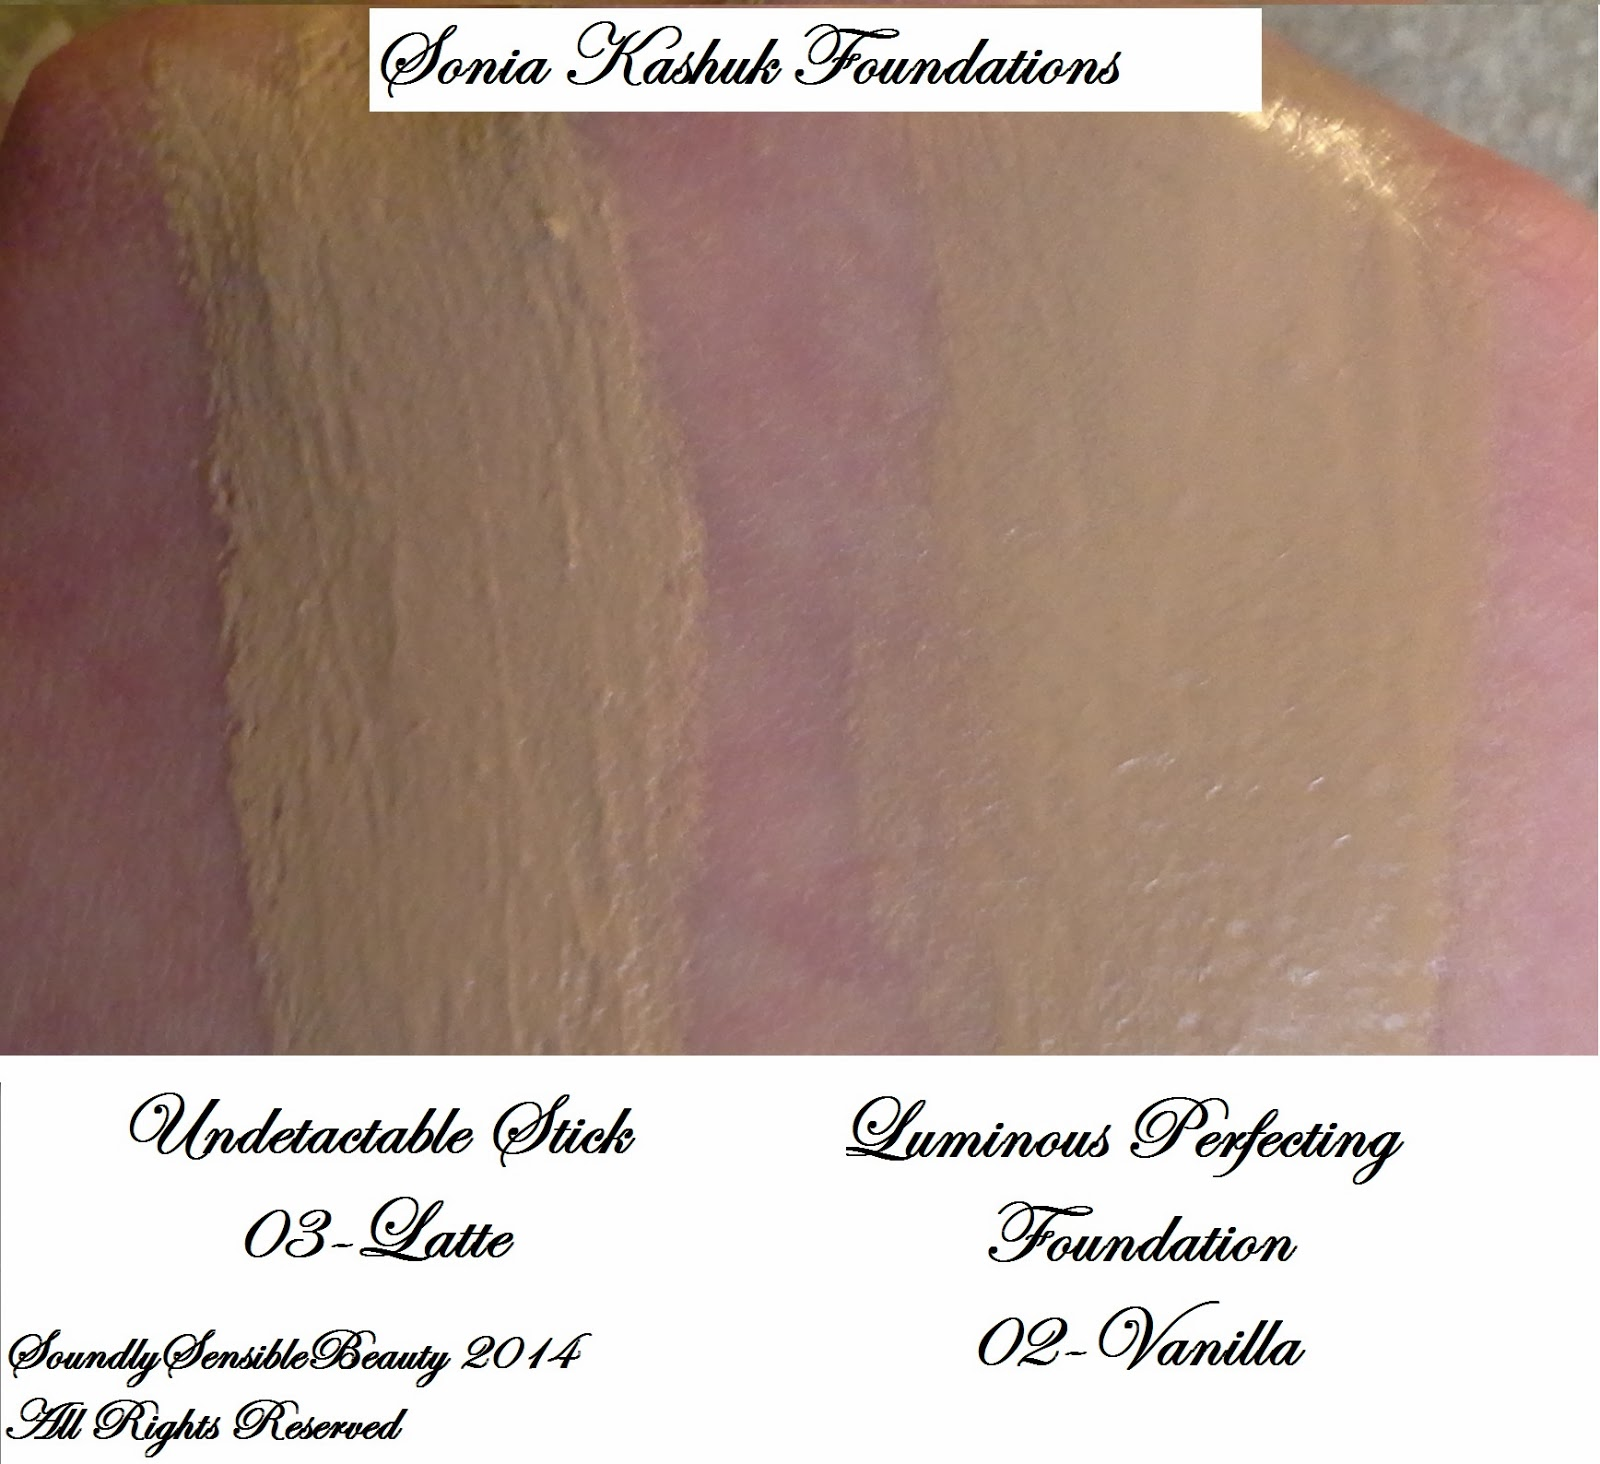 Sonia Kashuk Luminous Perfecting Foundation